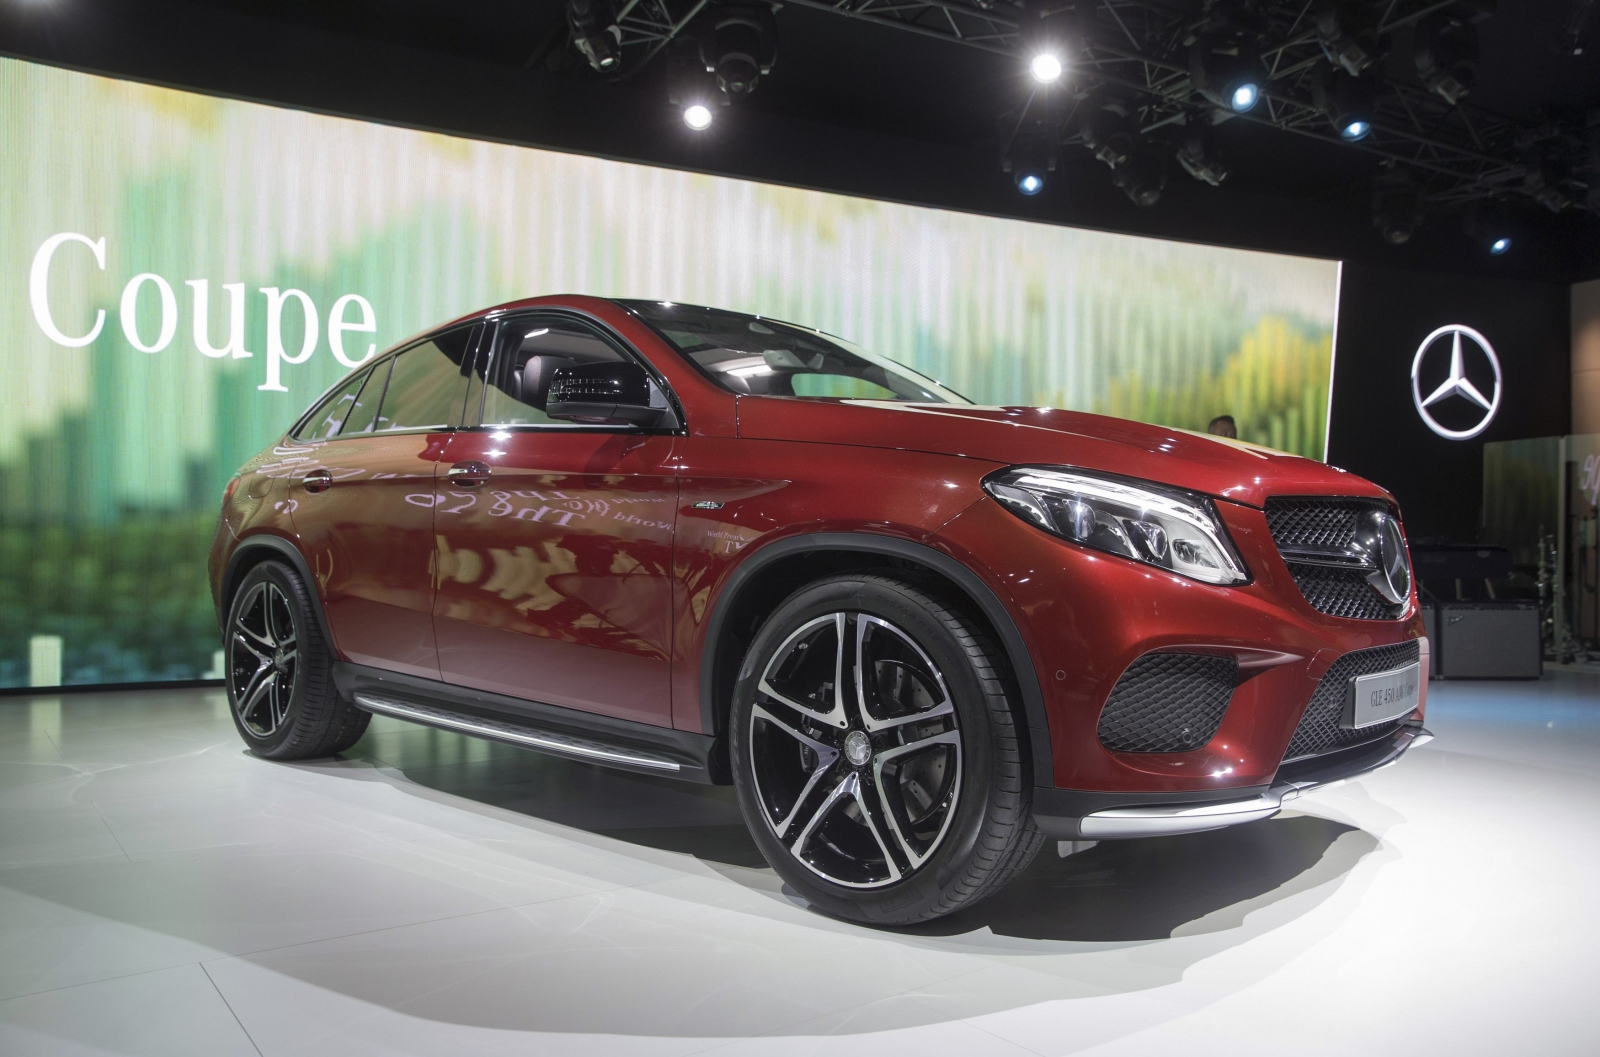 Mercedes kicks off Auto Show with new coupe